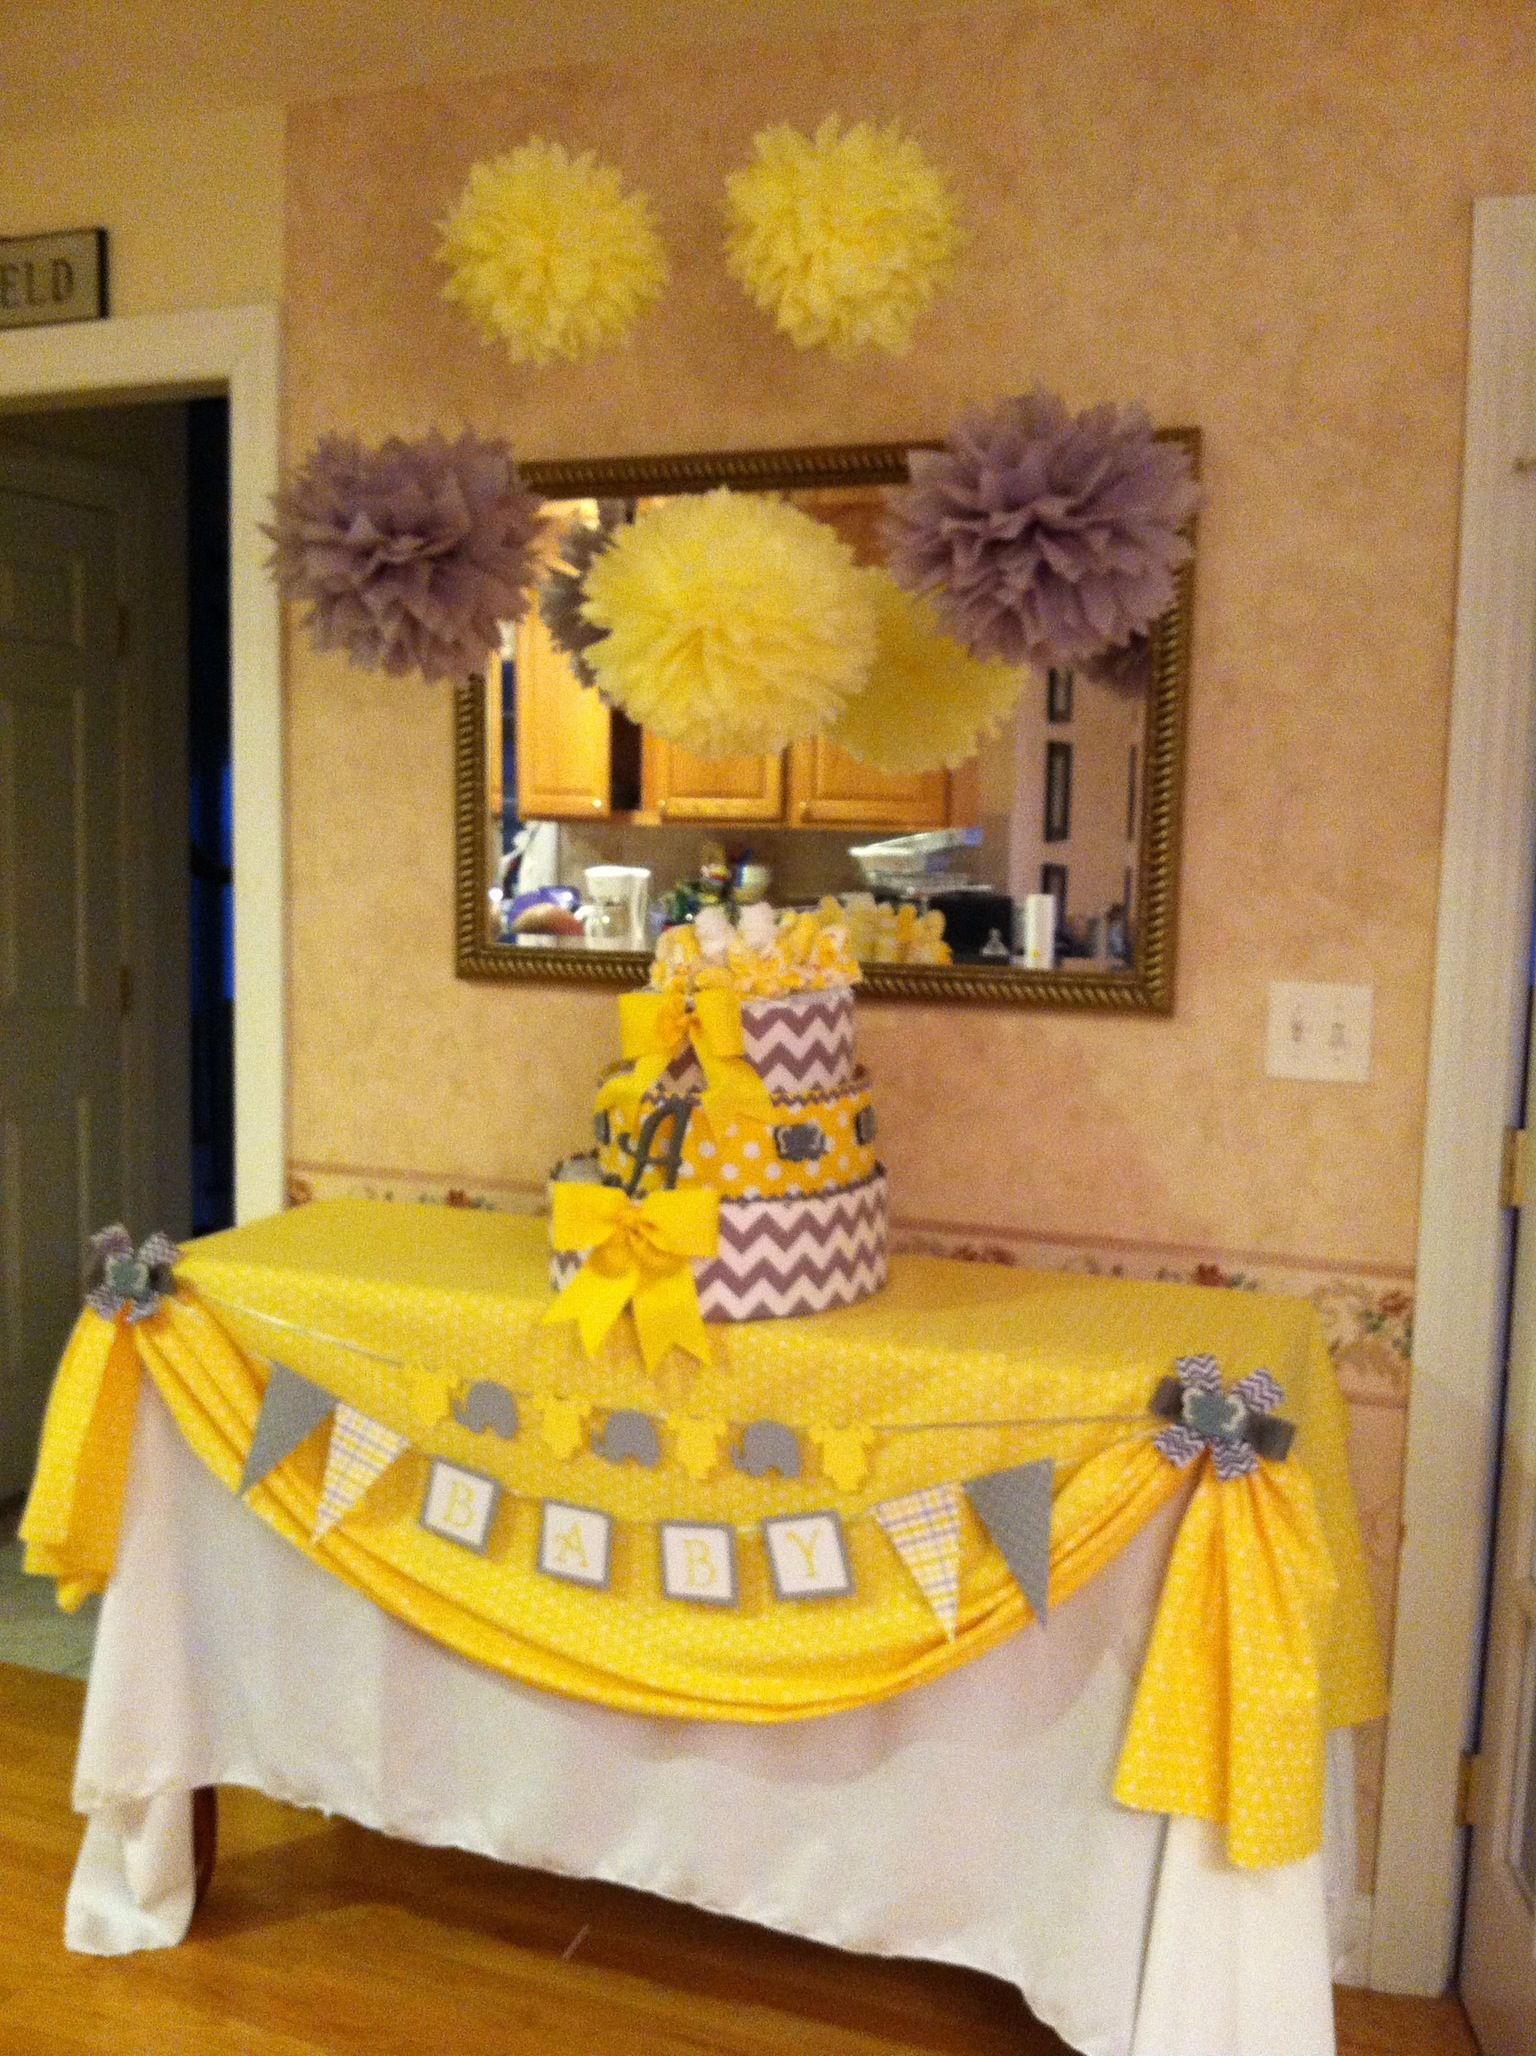 Wrong Colors But Cute Idea For Using Plastic Table Clothes Cute